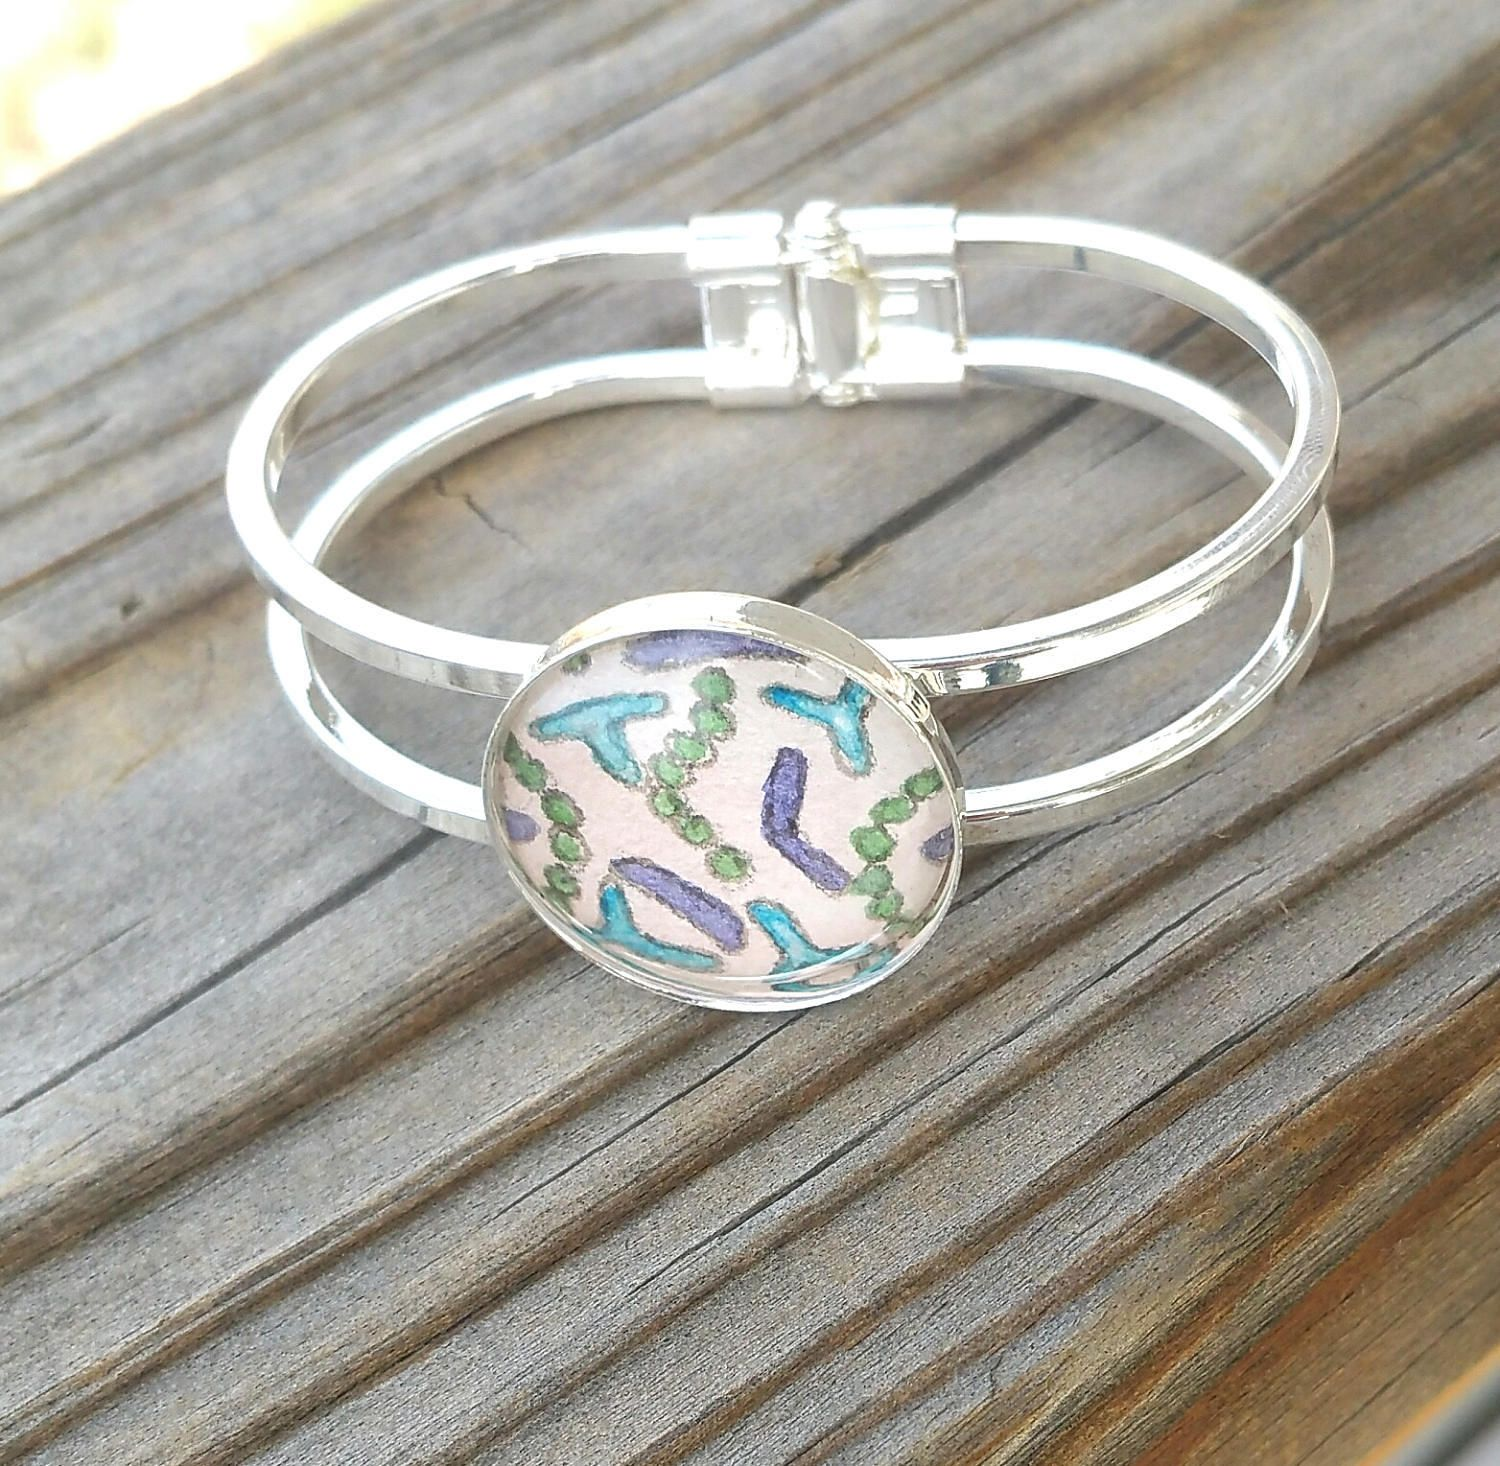 Bacteria Bracelet. Beneficial Bacteria Bask in a Bracelet, hand-painted in watercolor for your favorite scientist!